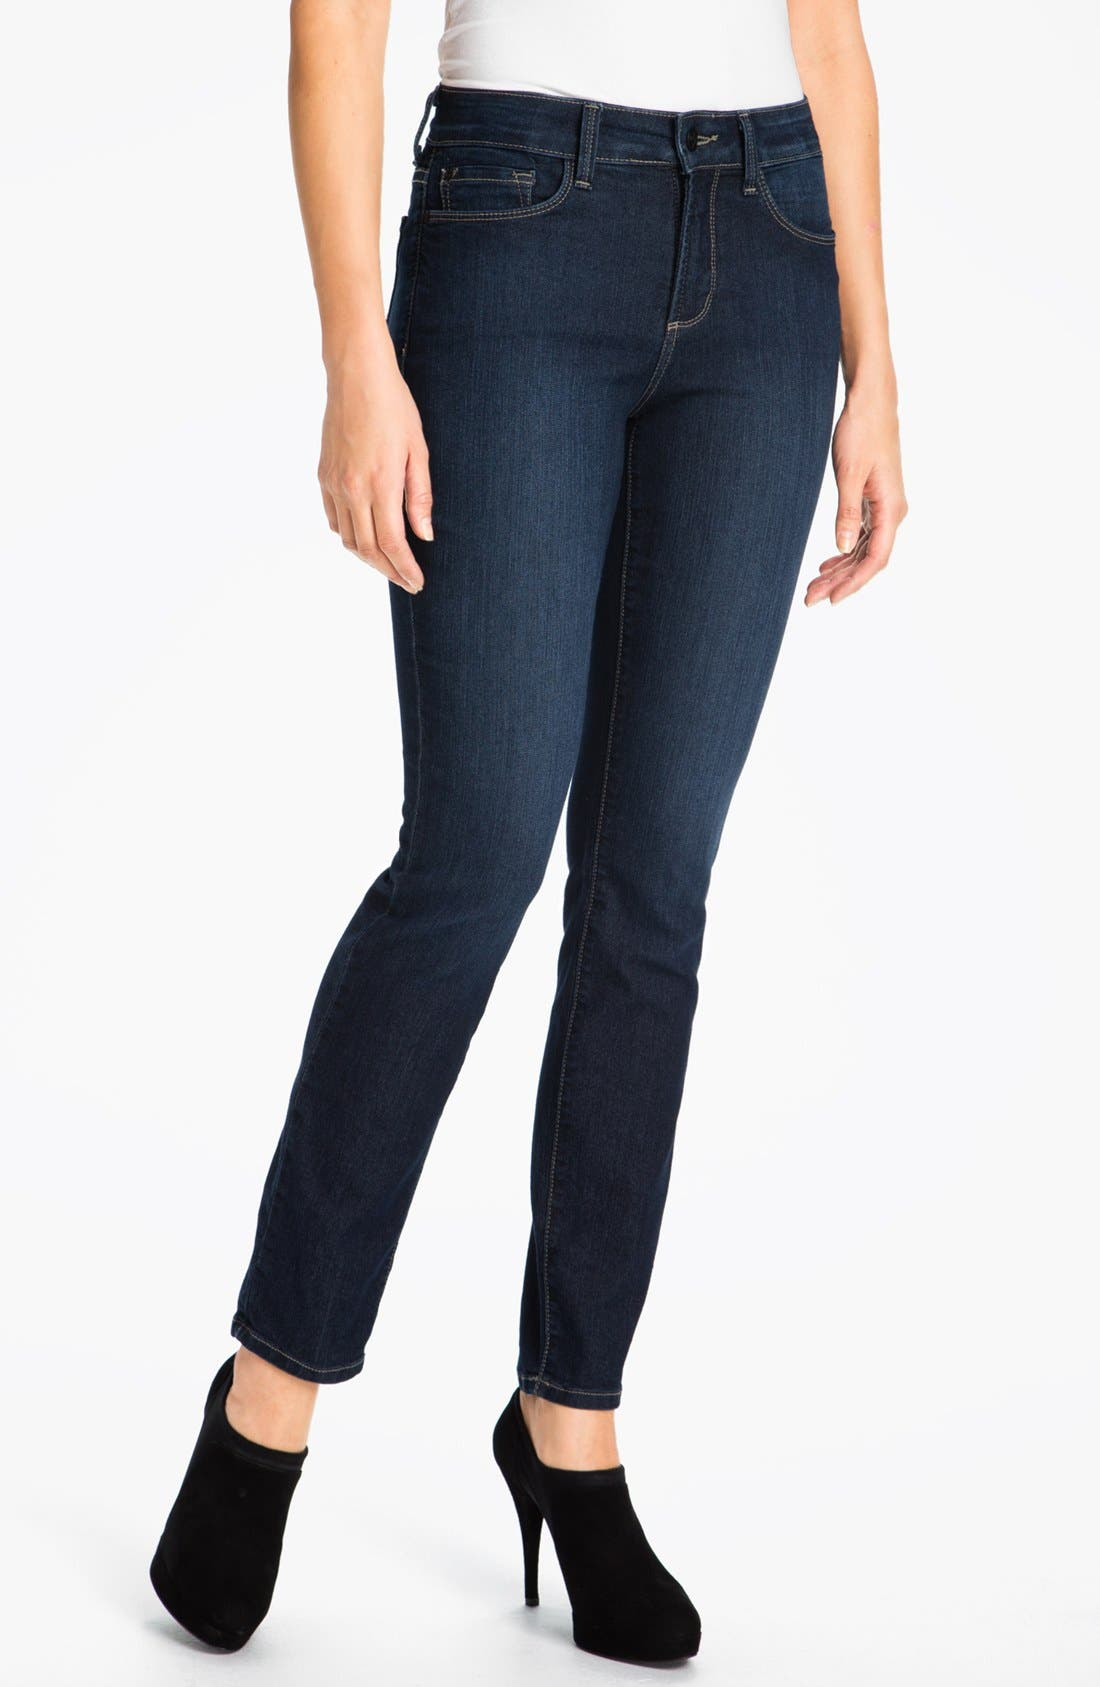 'Alina' Stretch Skinny Jeans,                             Main thumbnail 1, color,                             425